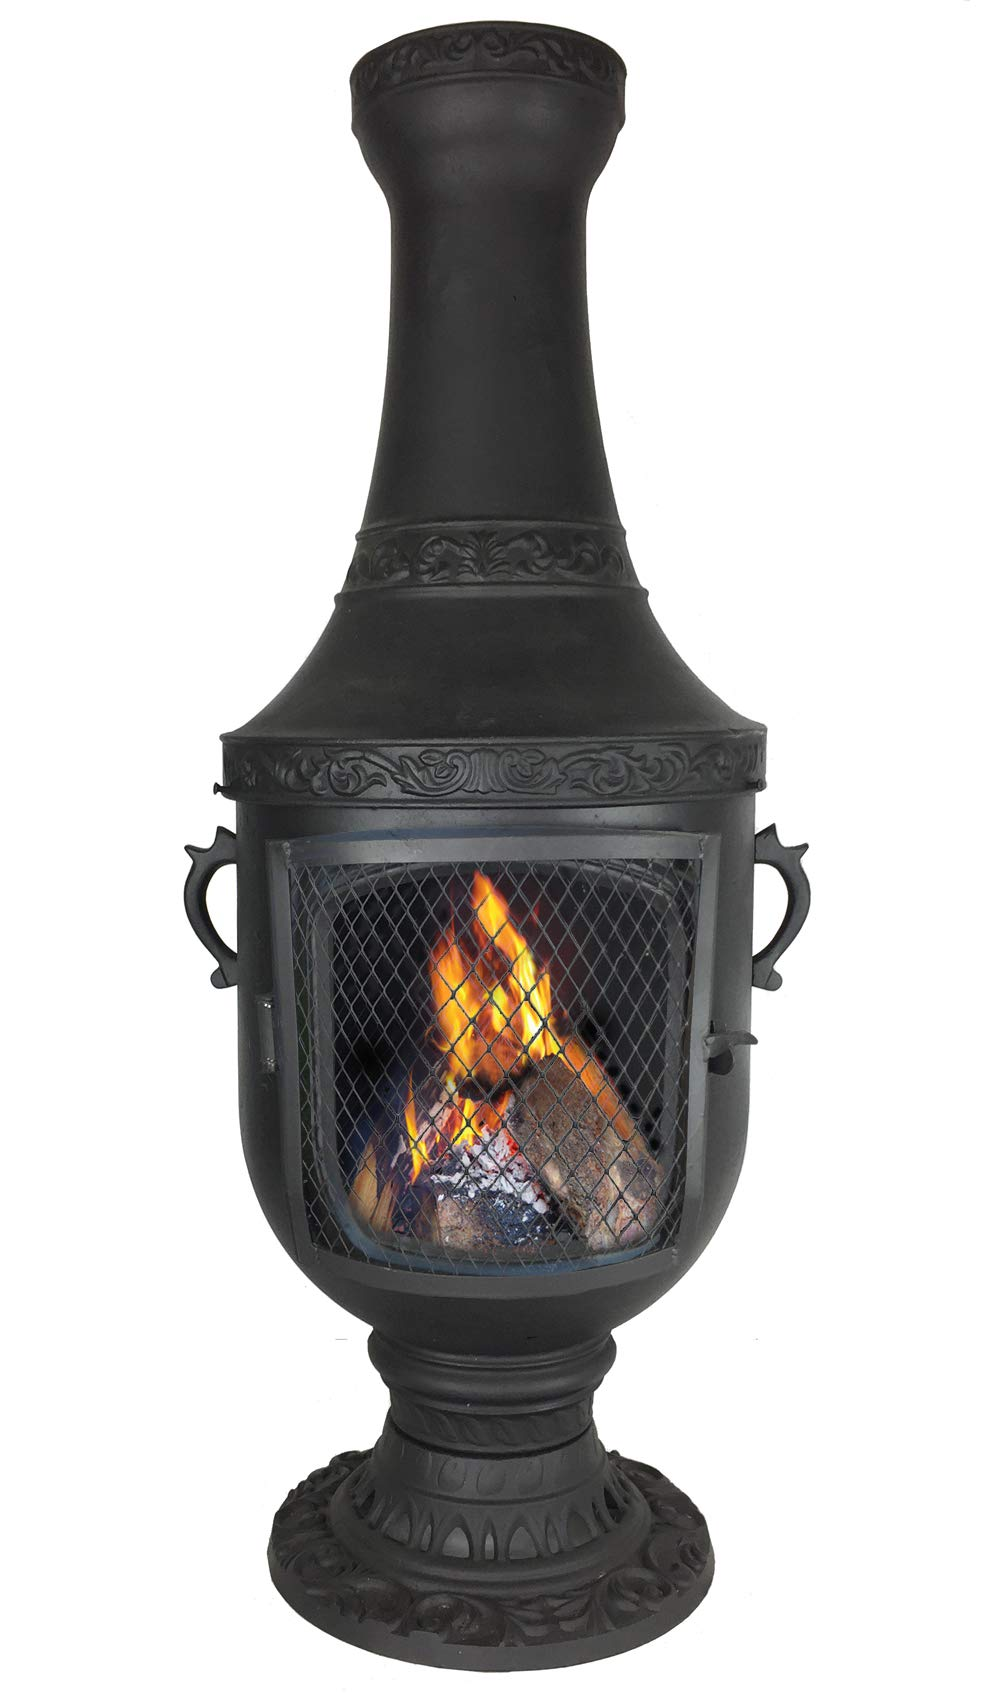 The Blue Rooster CAST Aluminum Venetian Chiminea with Gas kit and 10' Hose in Charcoal. Also Comes with a Free Year Round Cover. by The Blue Rooster